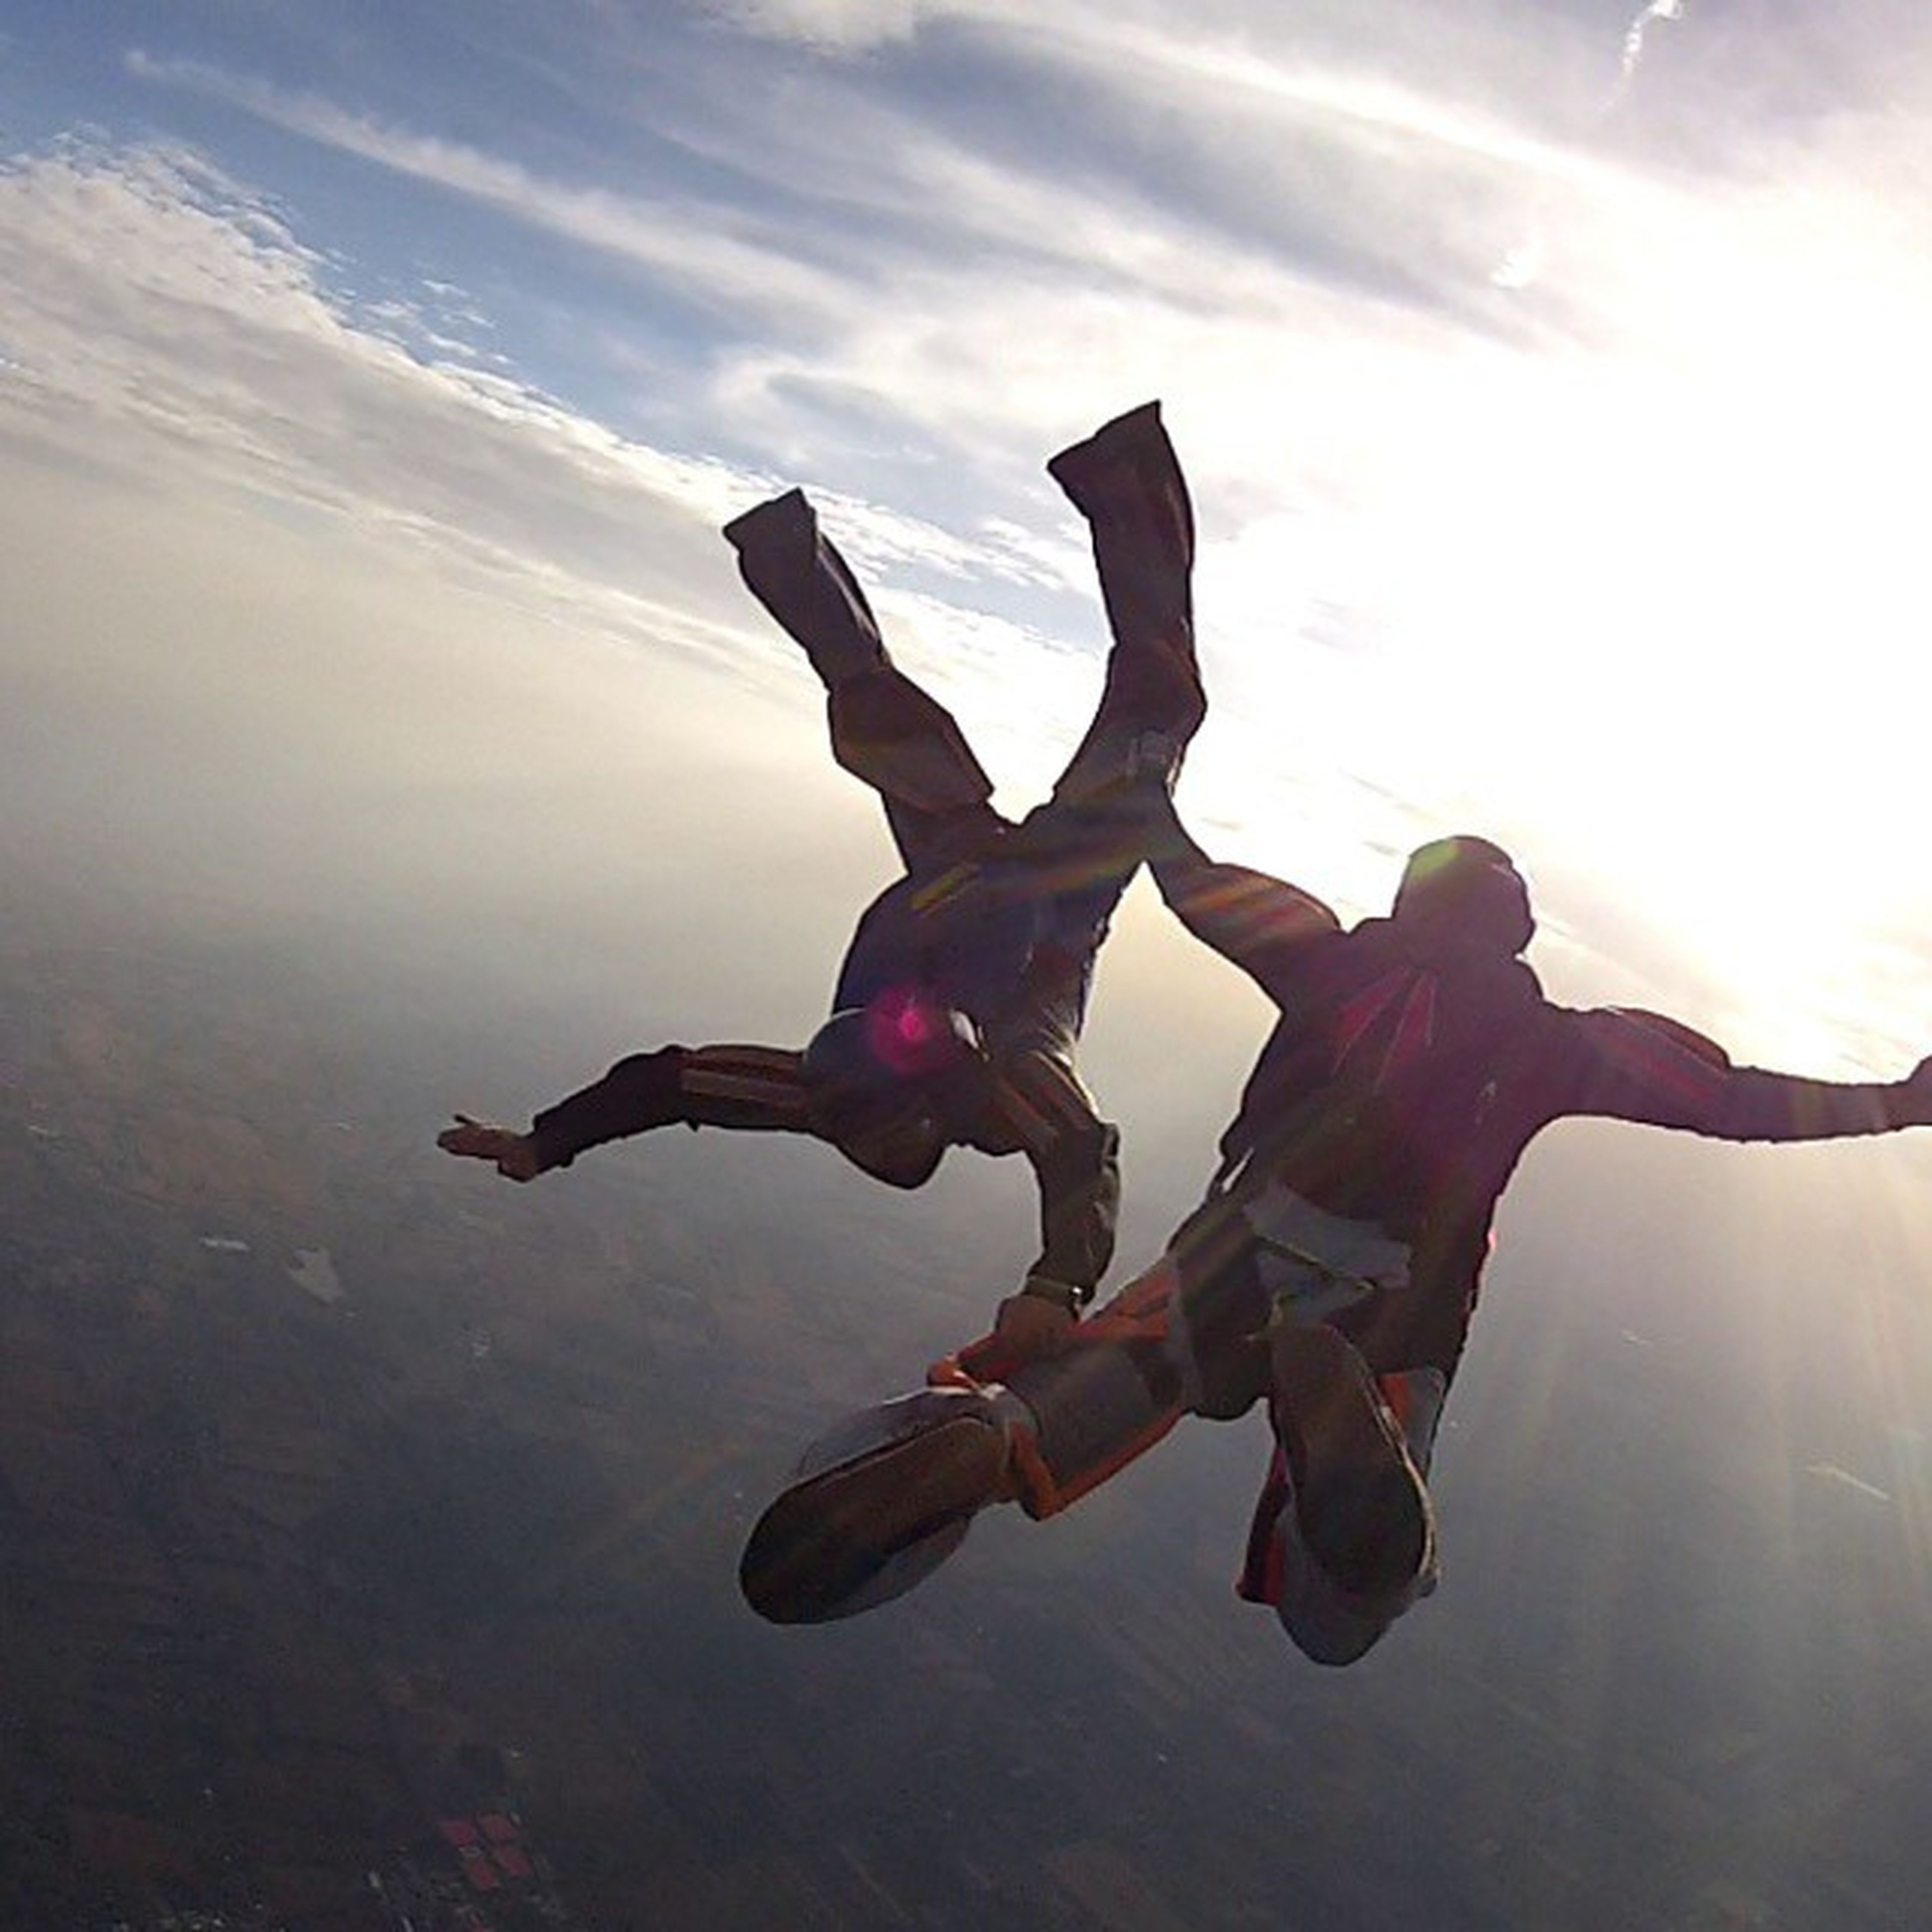 lifestyles, leisure activity, mid-air, full length, jumping, fun, arms outstretched, enjoyment, arms raised, skill, men, sky, carefree, holding, motion, low angle view, balance, vitality